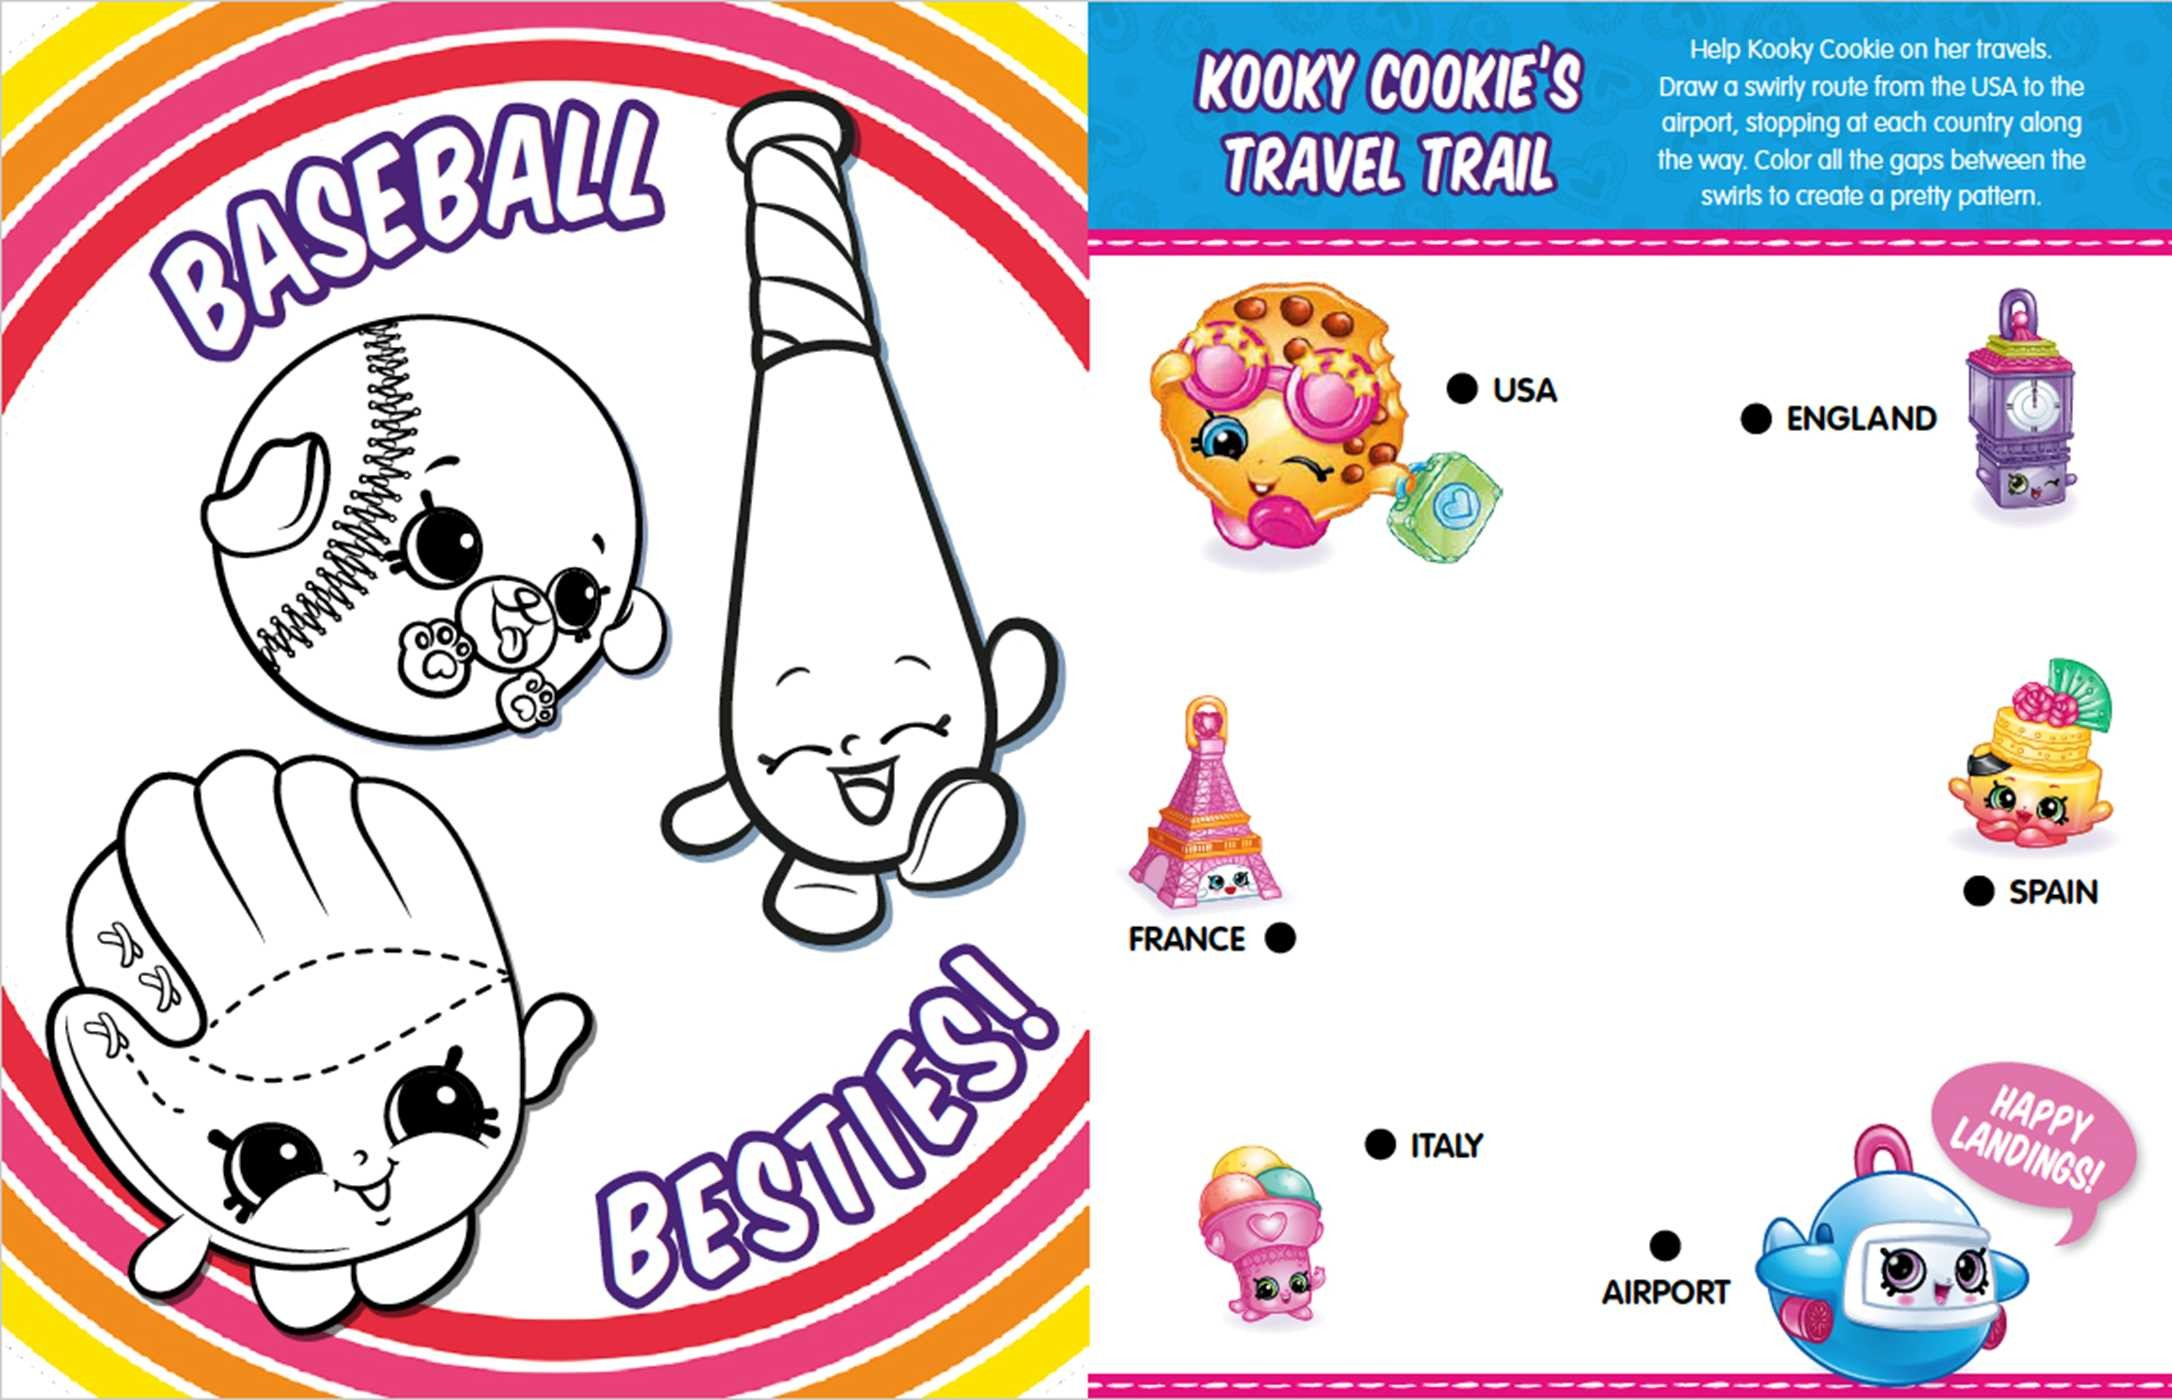 Shopkins oodles of doodles 9781499806755.in02